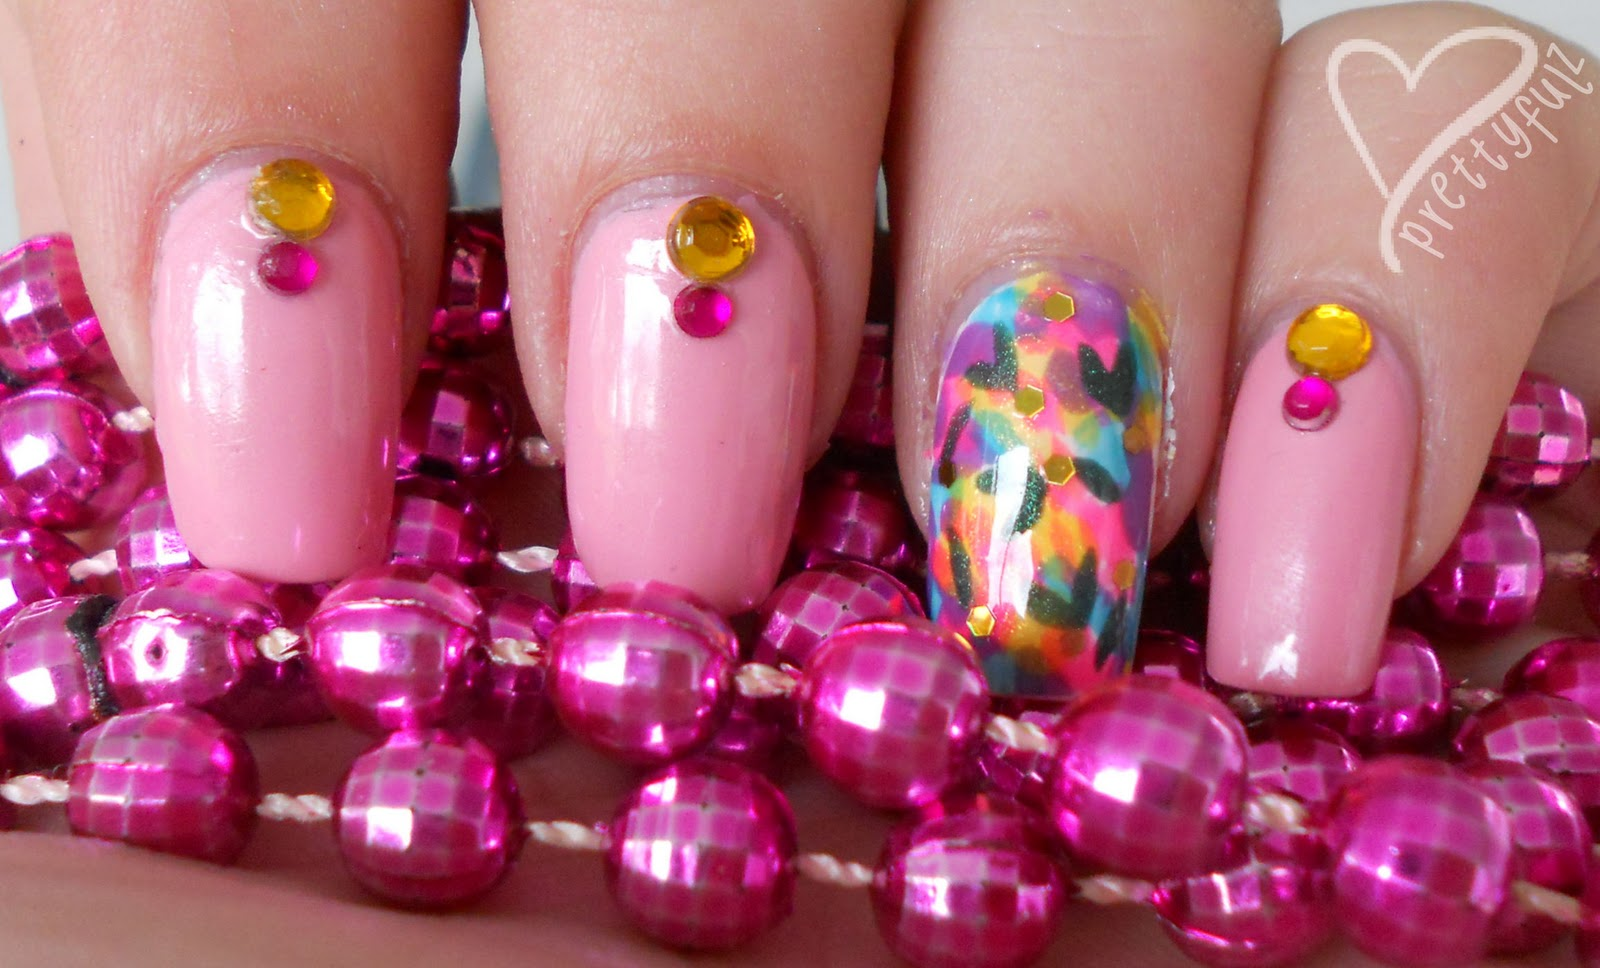 50 Spring Nail Art Ideas to Spruce Up Your Paws - Pccala